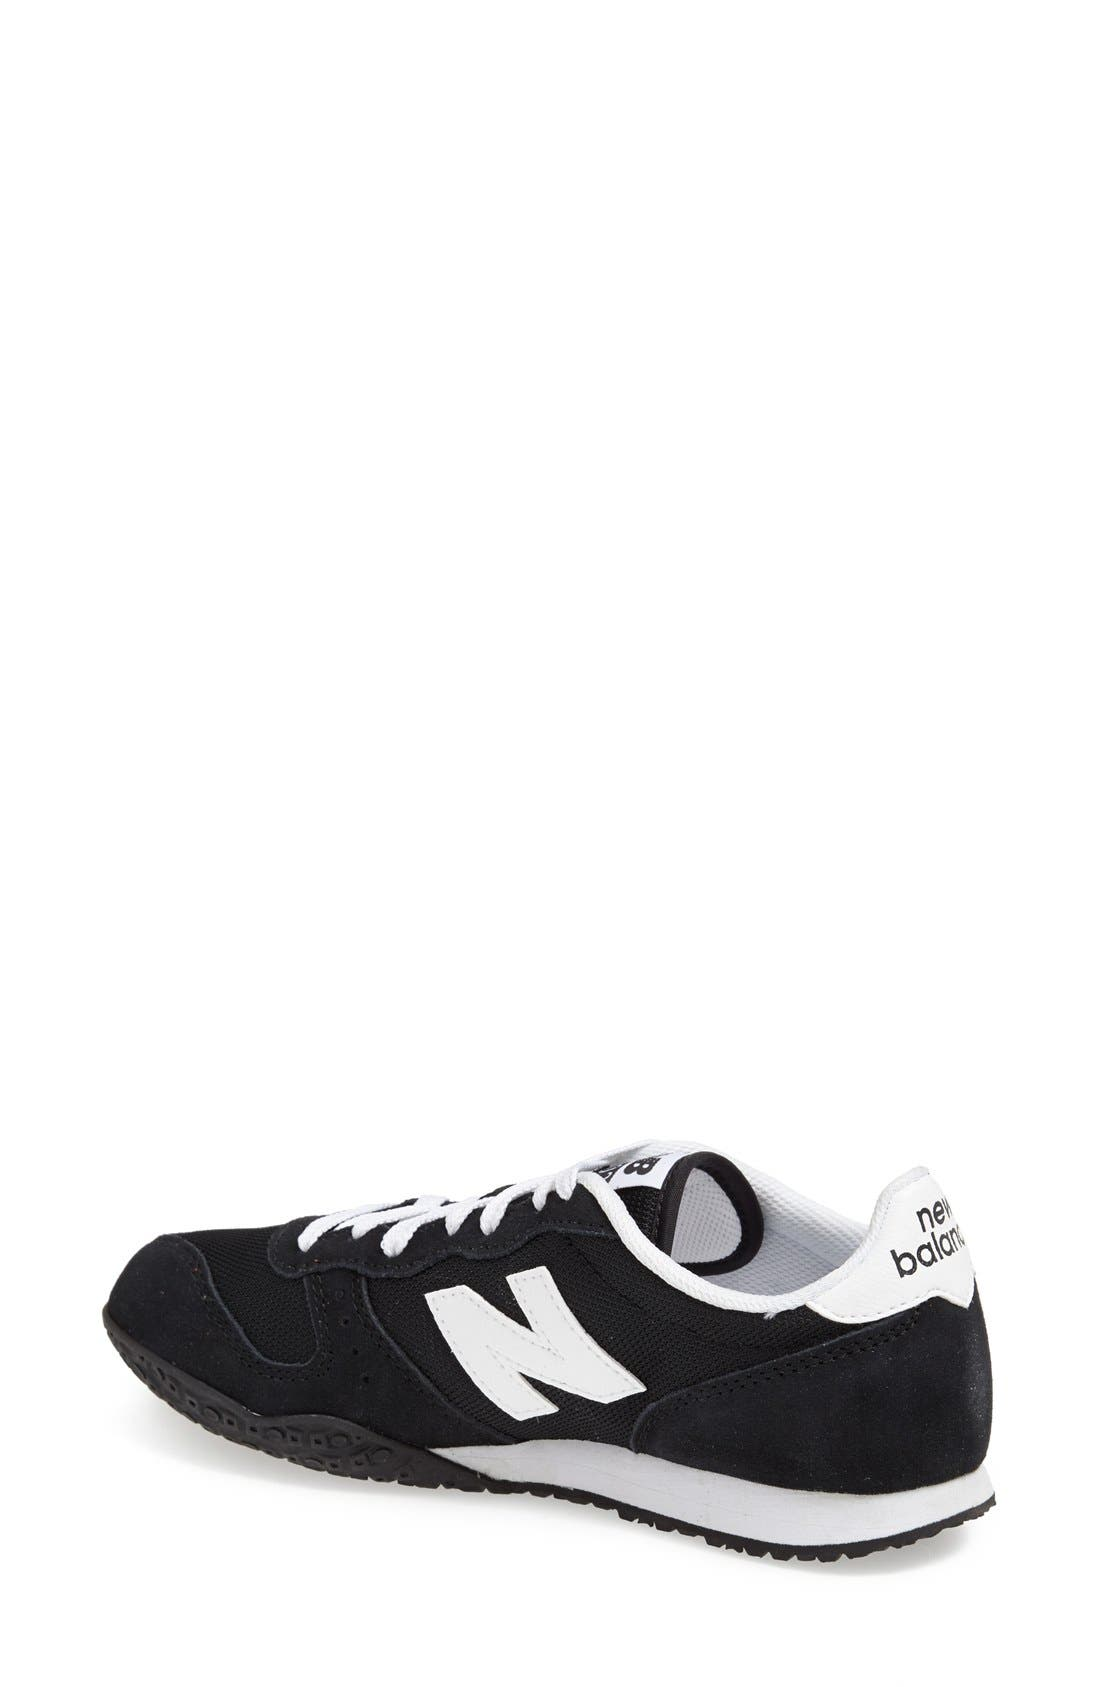 Alternate Image 2  - New Balance 'Lo Pro' Sneaker (Women)